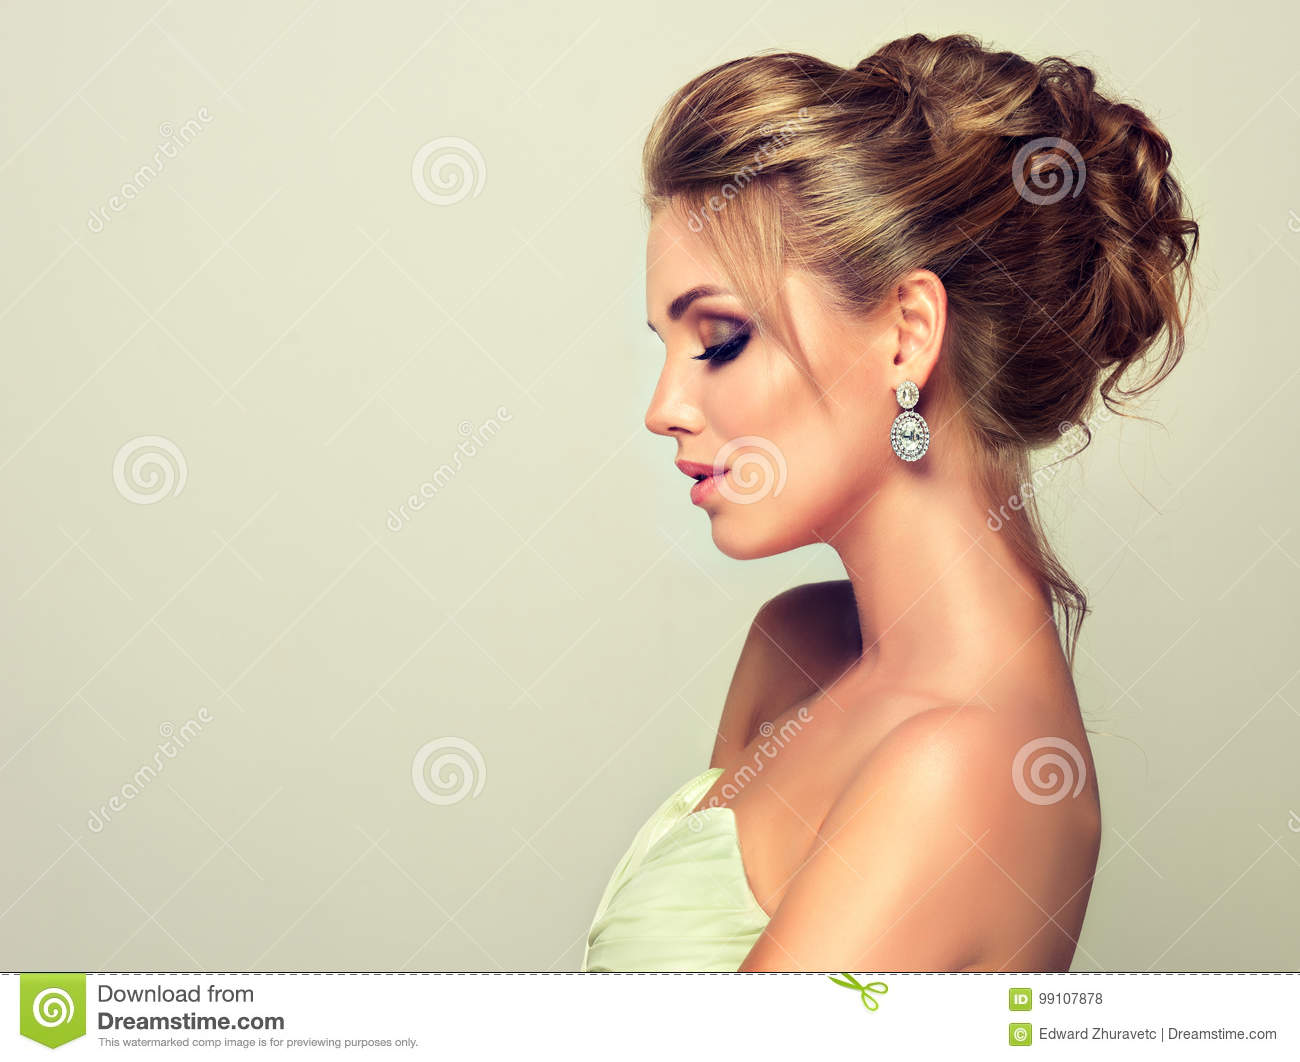 Young And Attractive Blond Model Dressed In Evening Gown And Jewelry